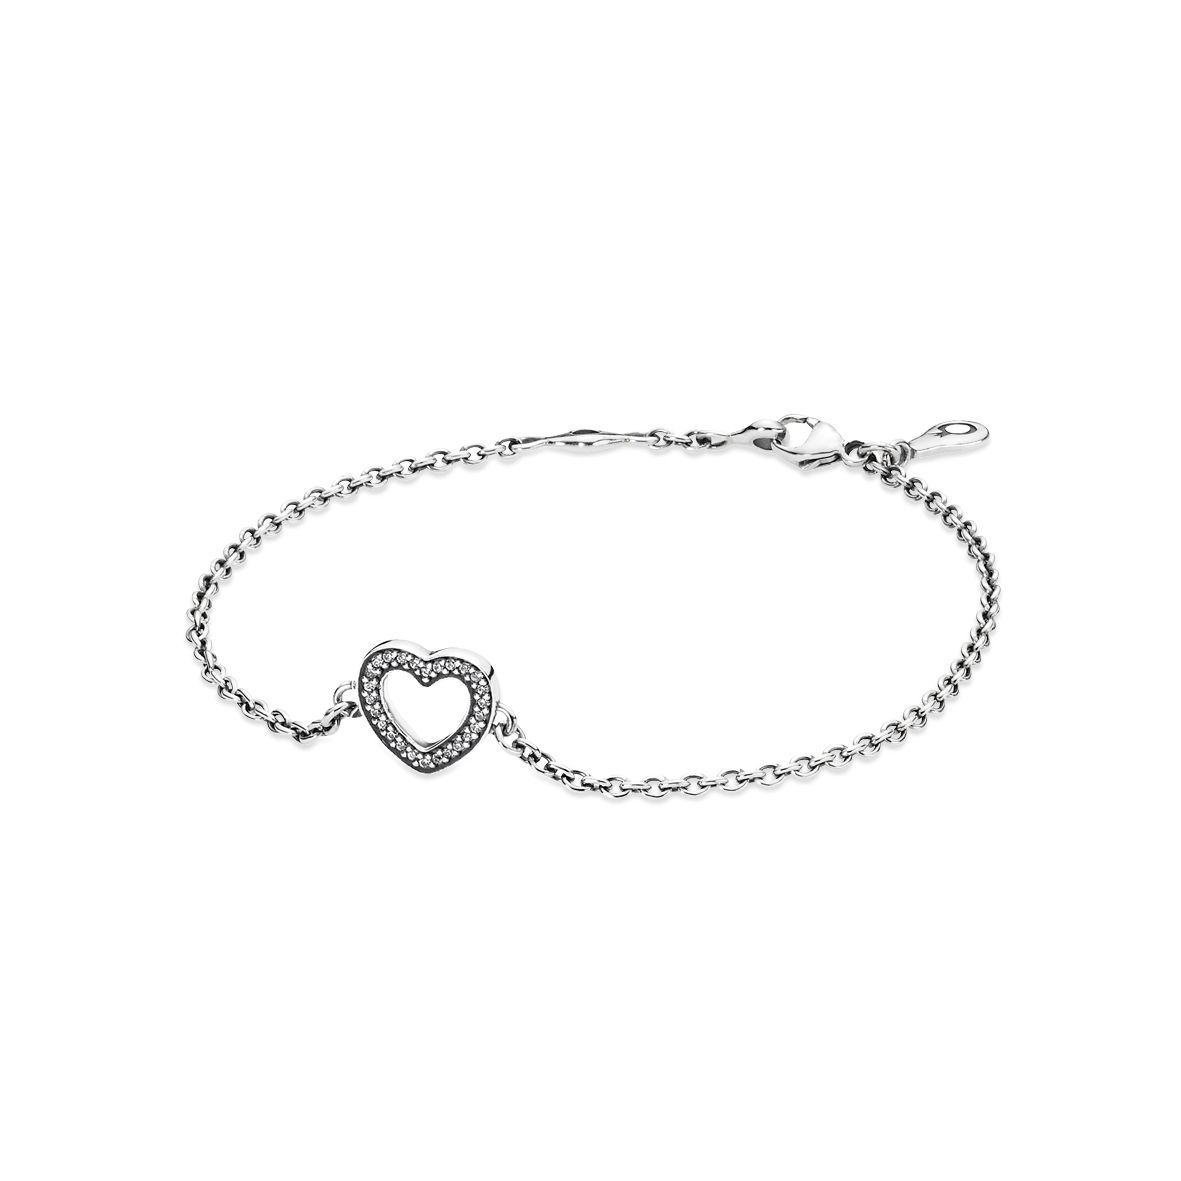 Heart silver bracelet with cubic zirconia